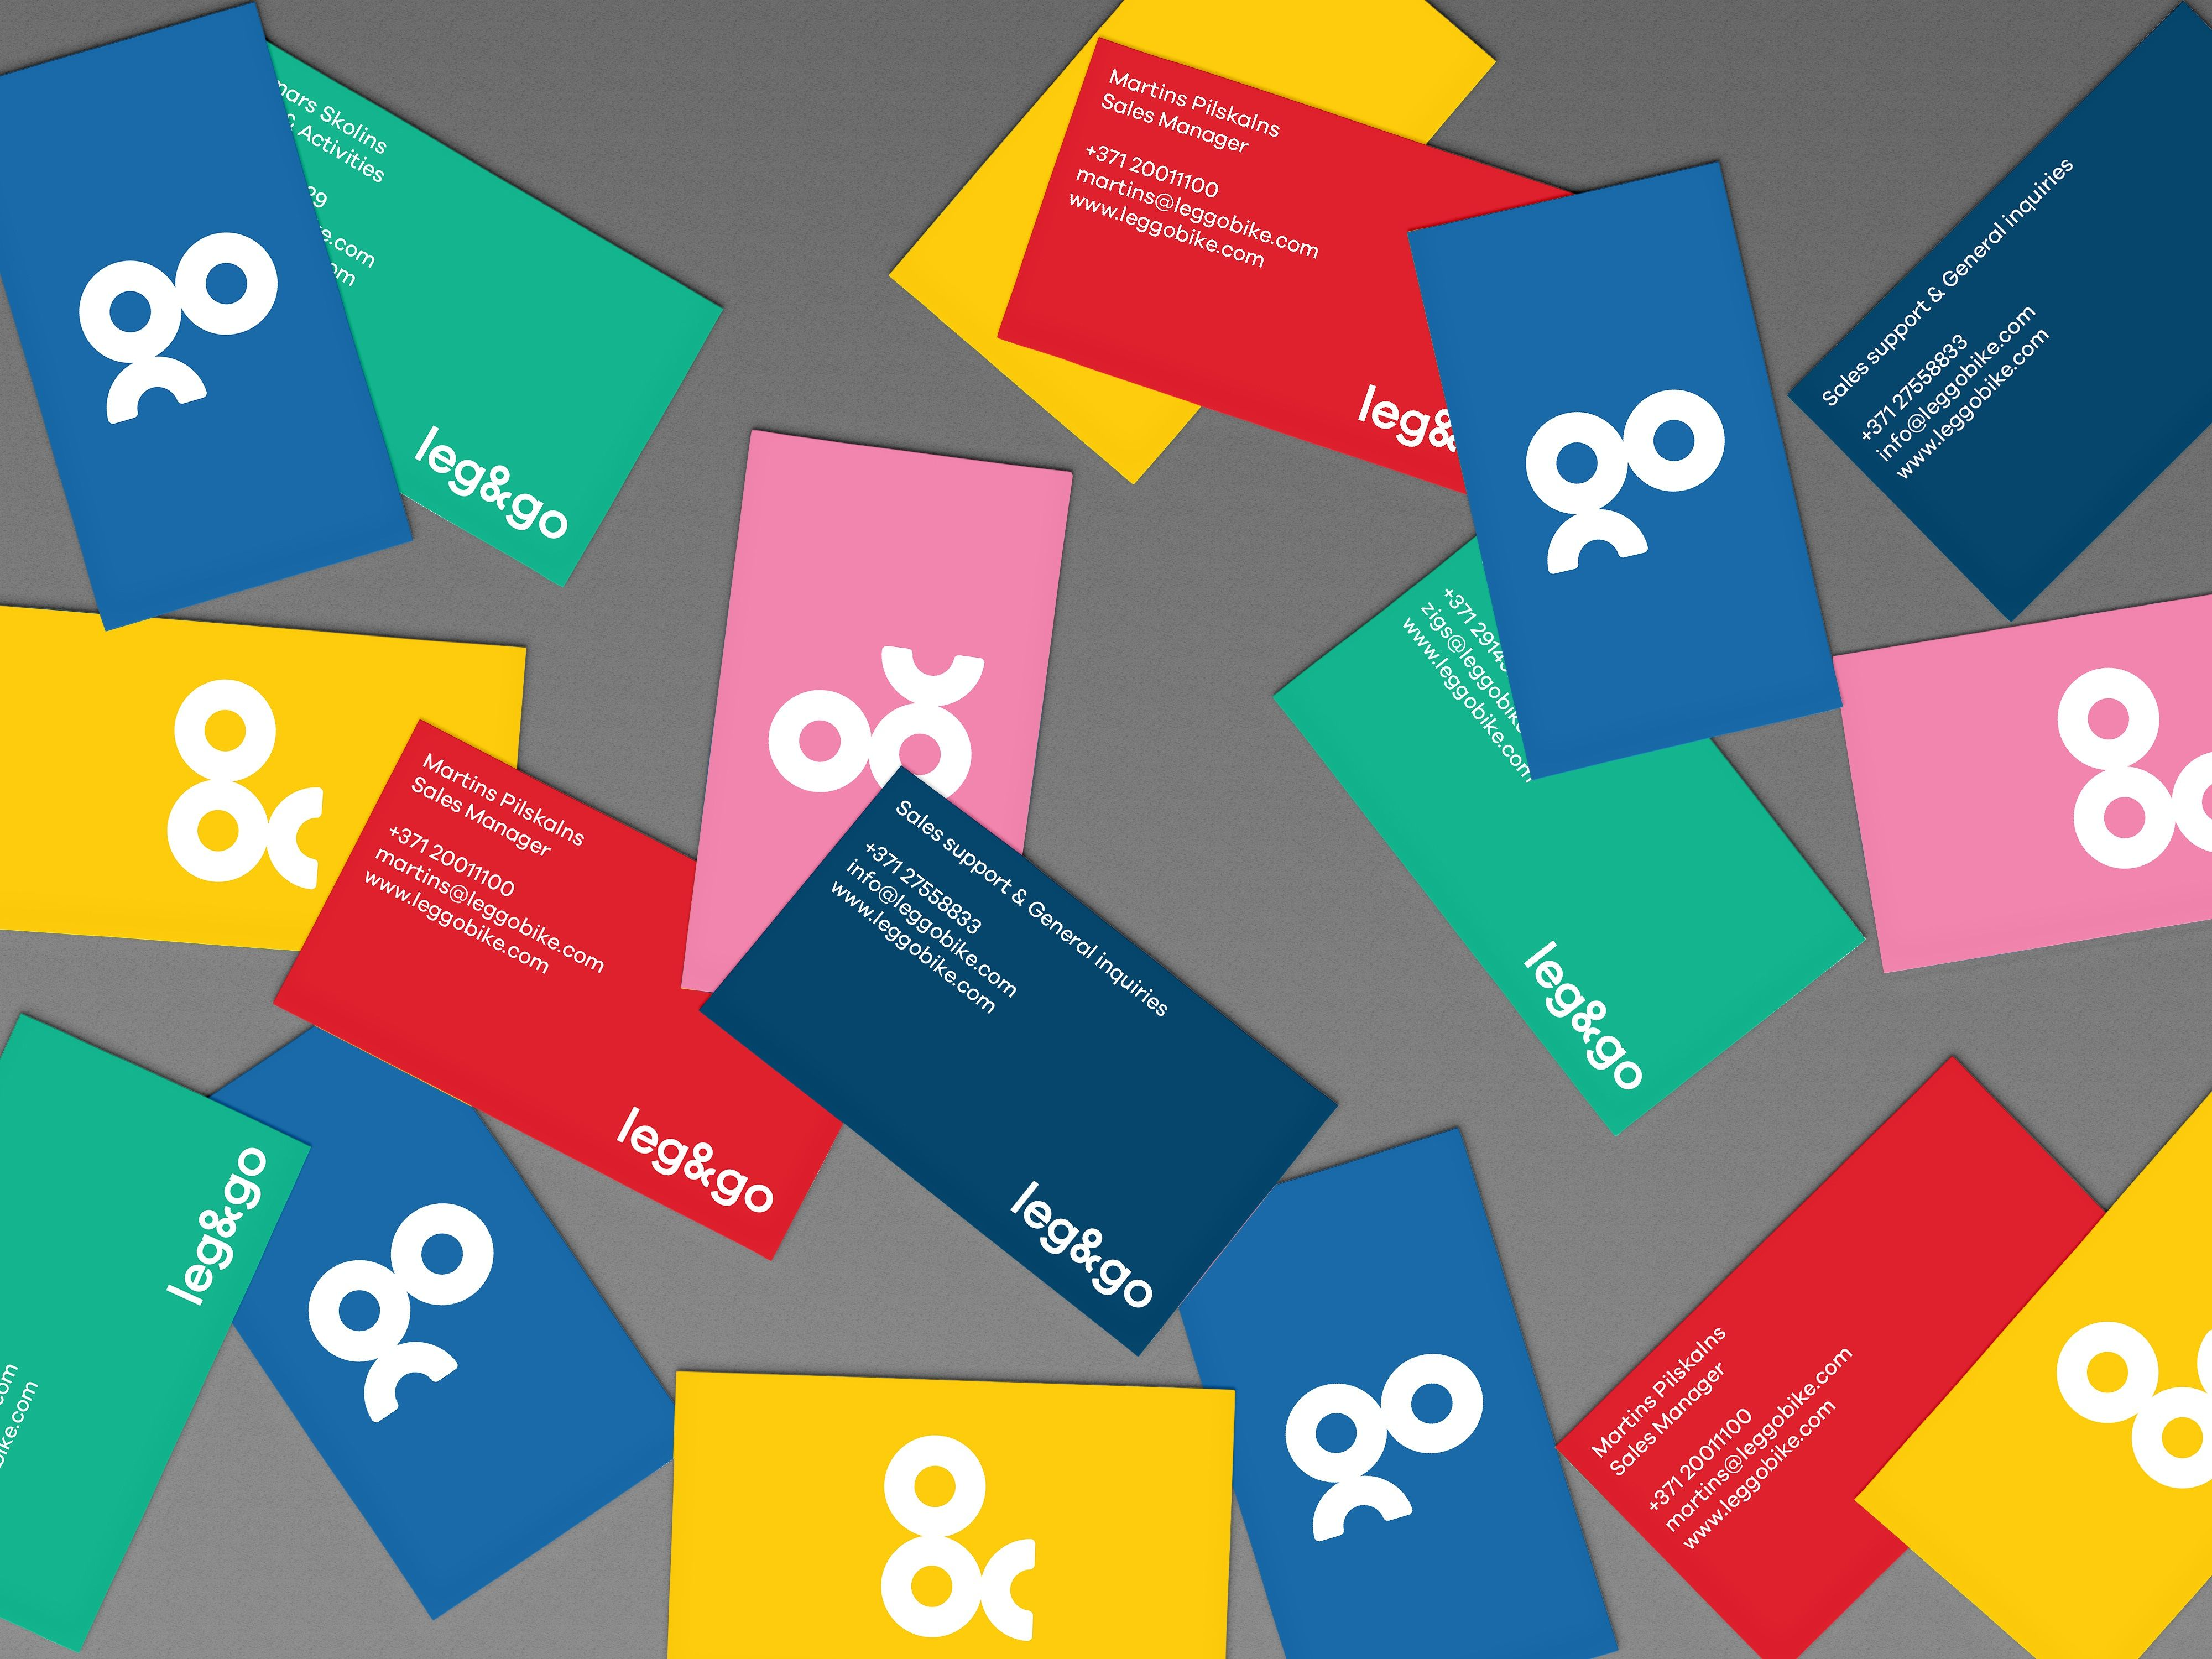 Leg & Go Business Card | Business cards, Business and Design inspiration